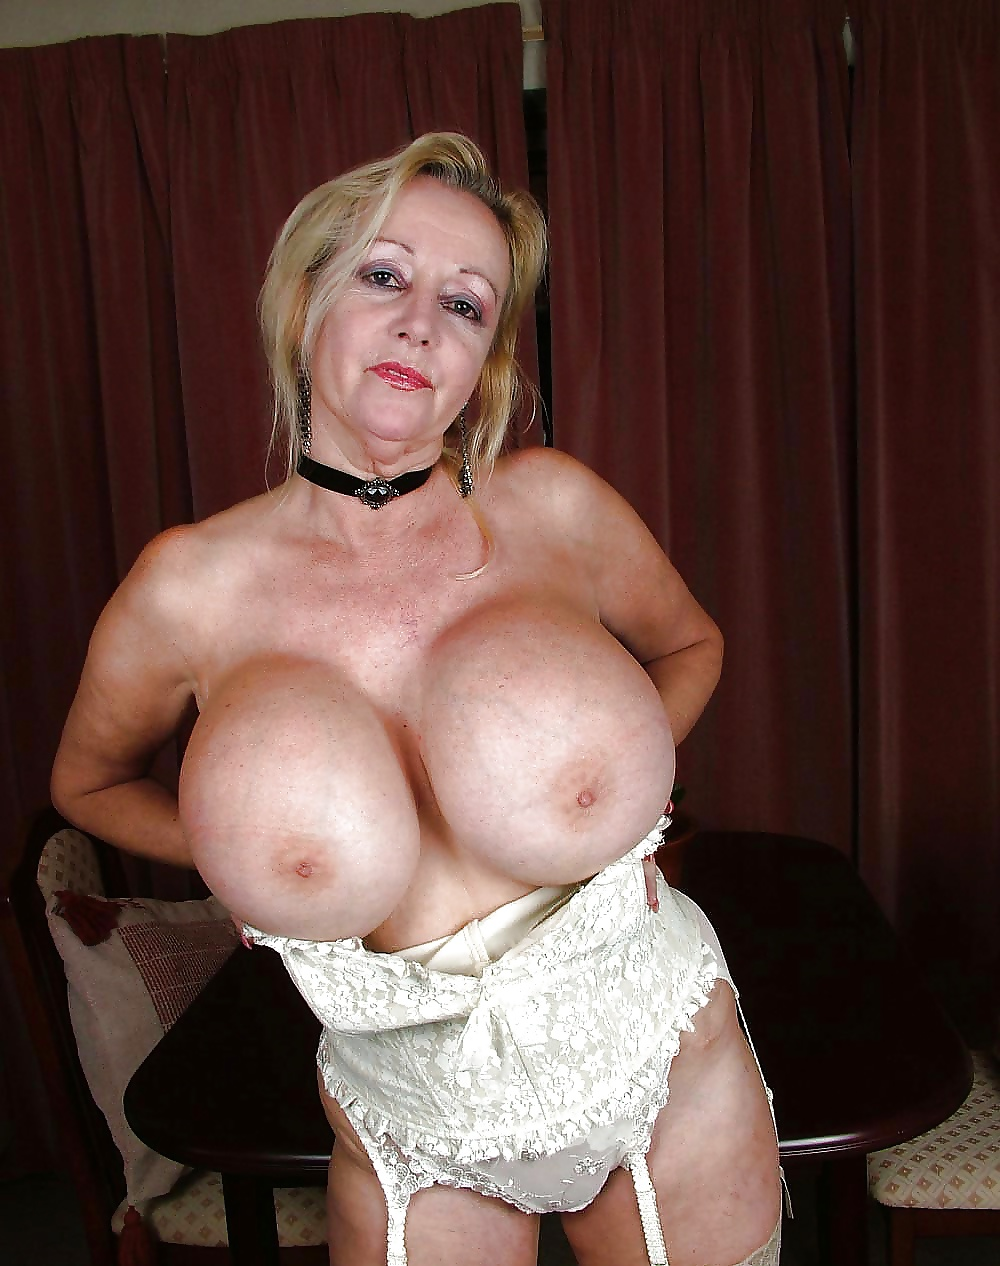 Hot old mom naked with big boobs — photo 9